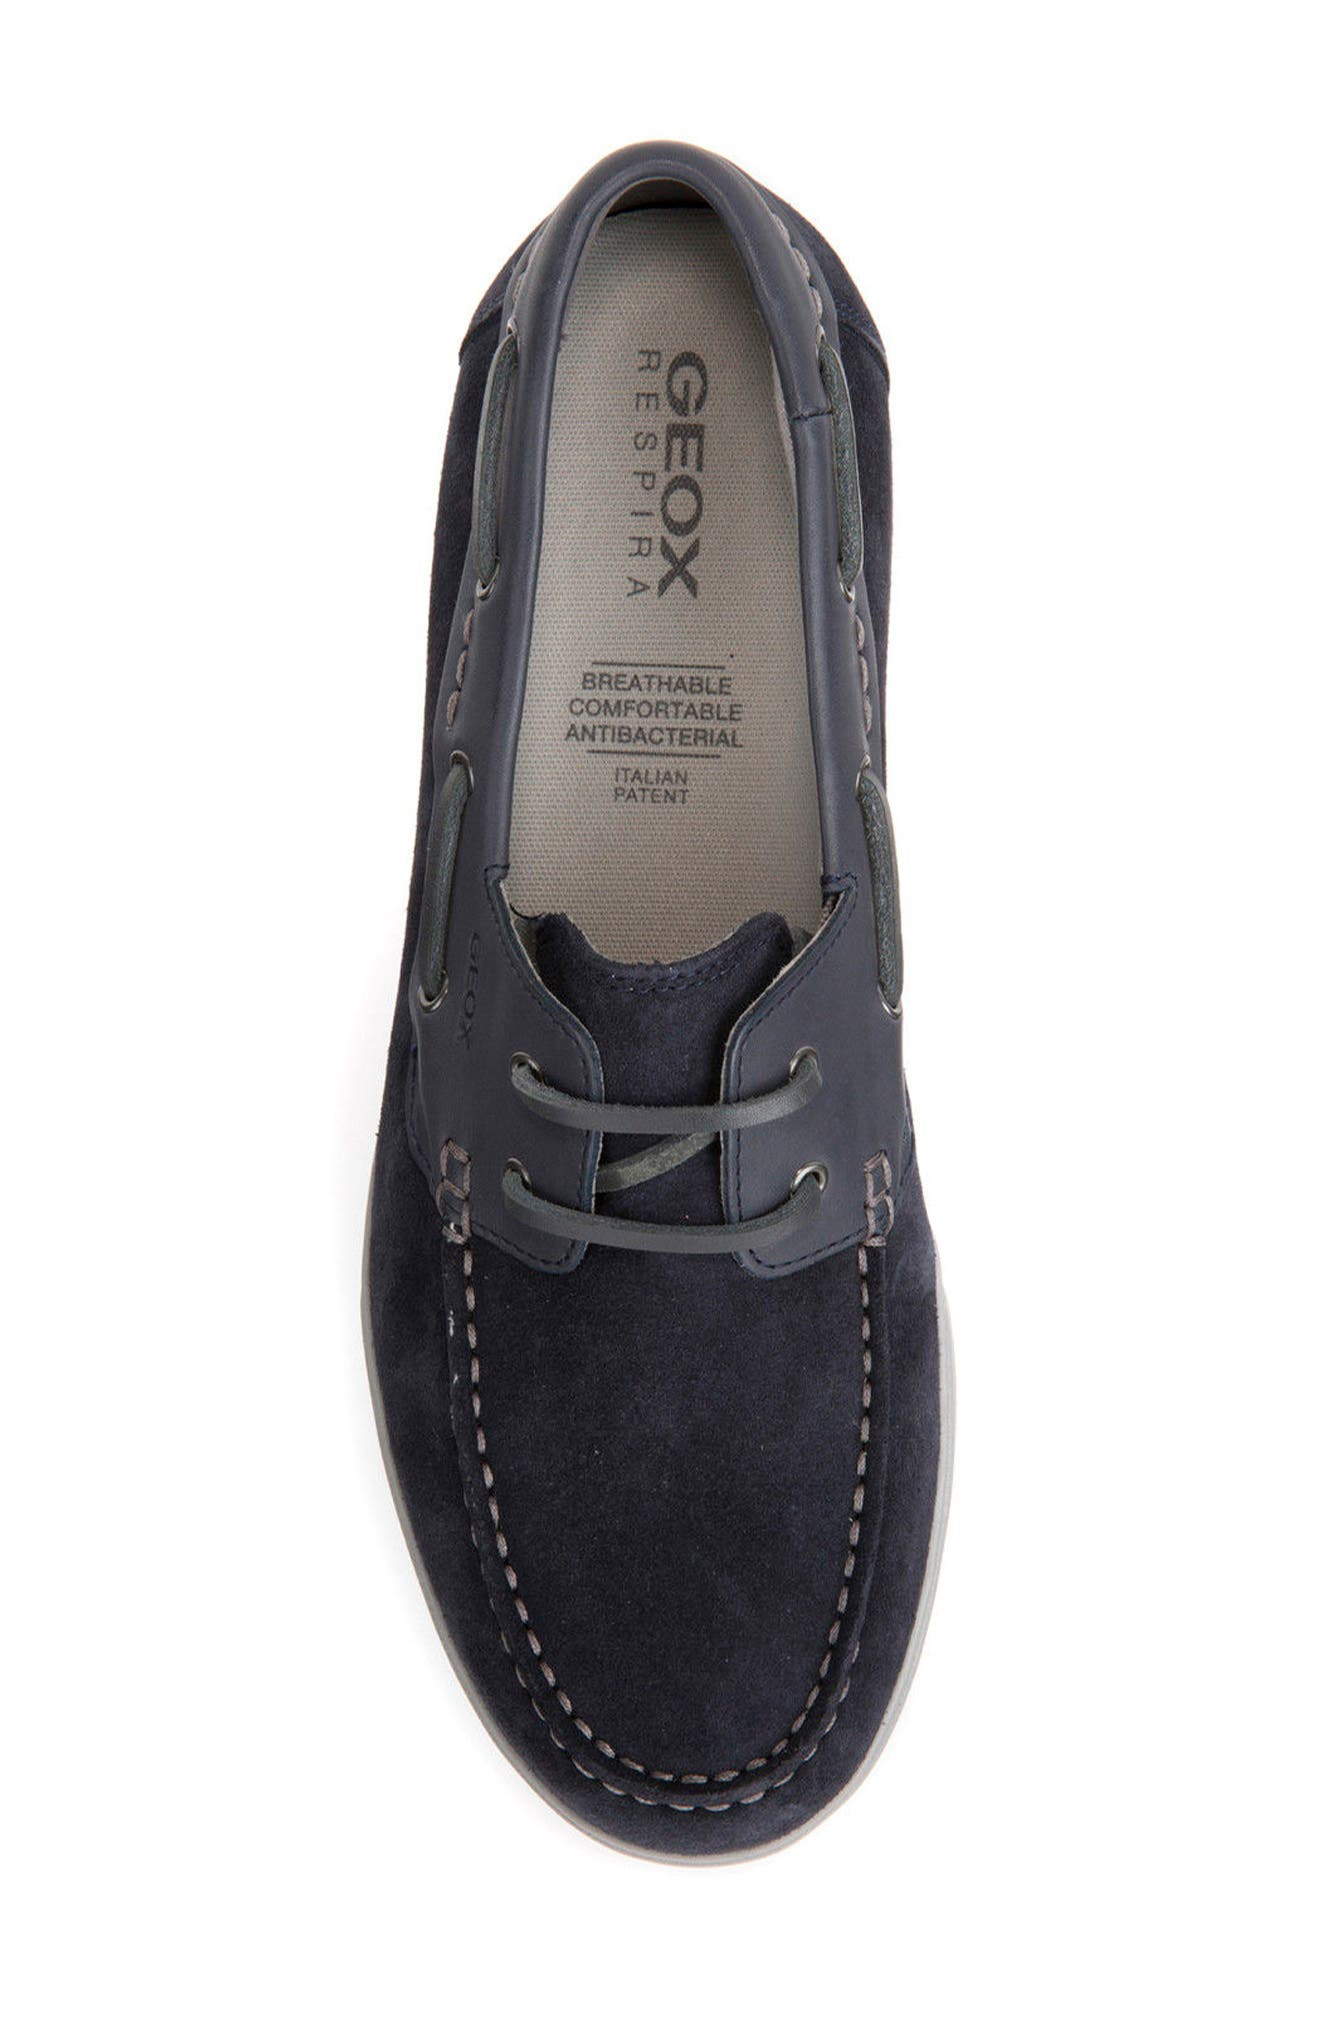 Walee 2 Boat Shoe,                             Alternate thumbnail 5, color,                             Navy Suede/ Leather